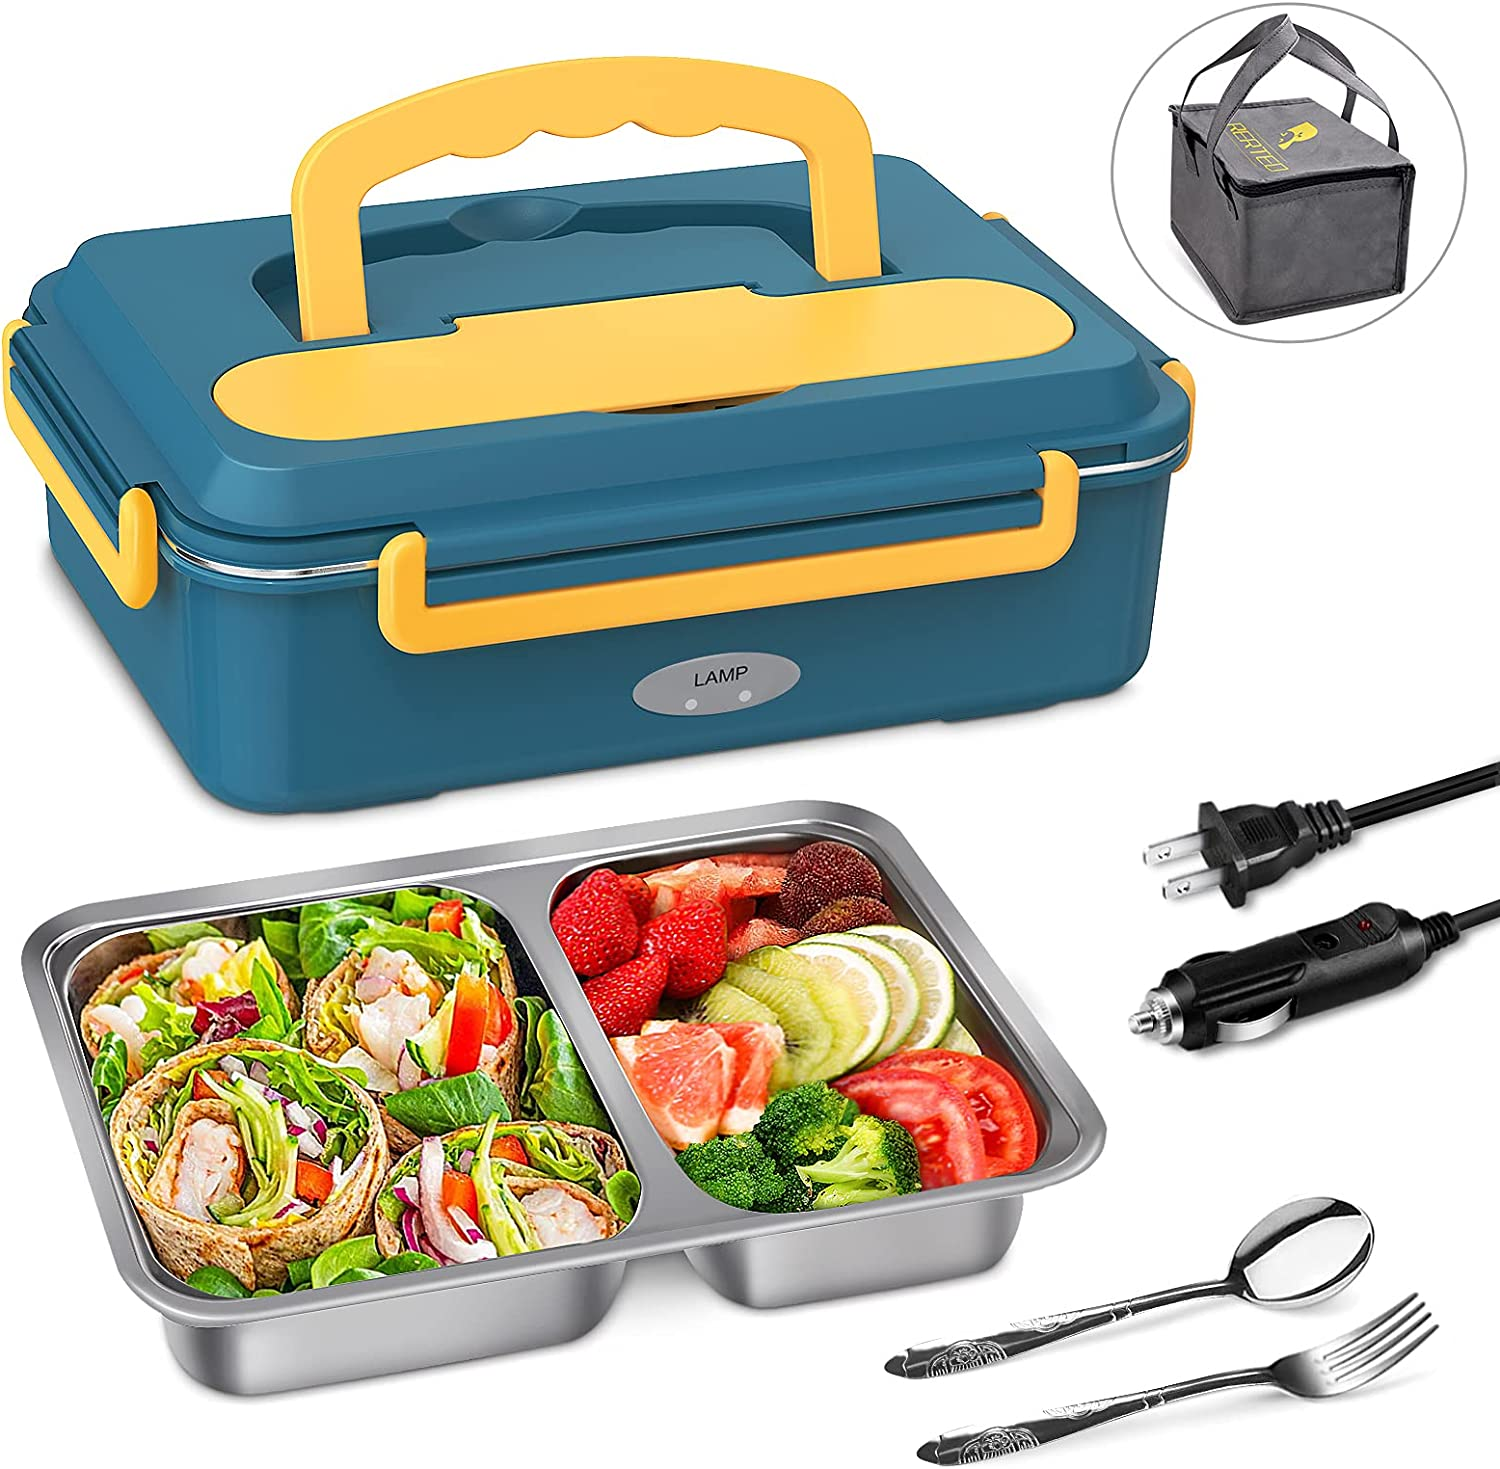 Electric Lunch Box Food Heater - Upgraded Fast Heating Lunchbox Food Warmer for Car and Home with 2 Compartments Removable 304 Stainless Steel Container, SS fork & spoon and Carry Bag